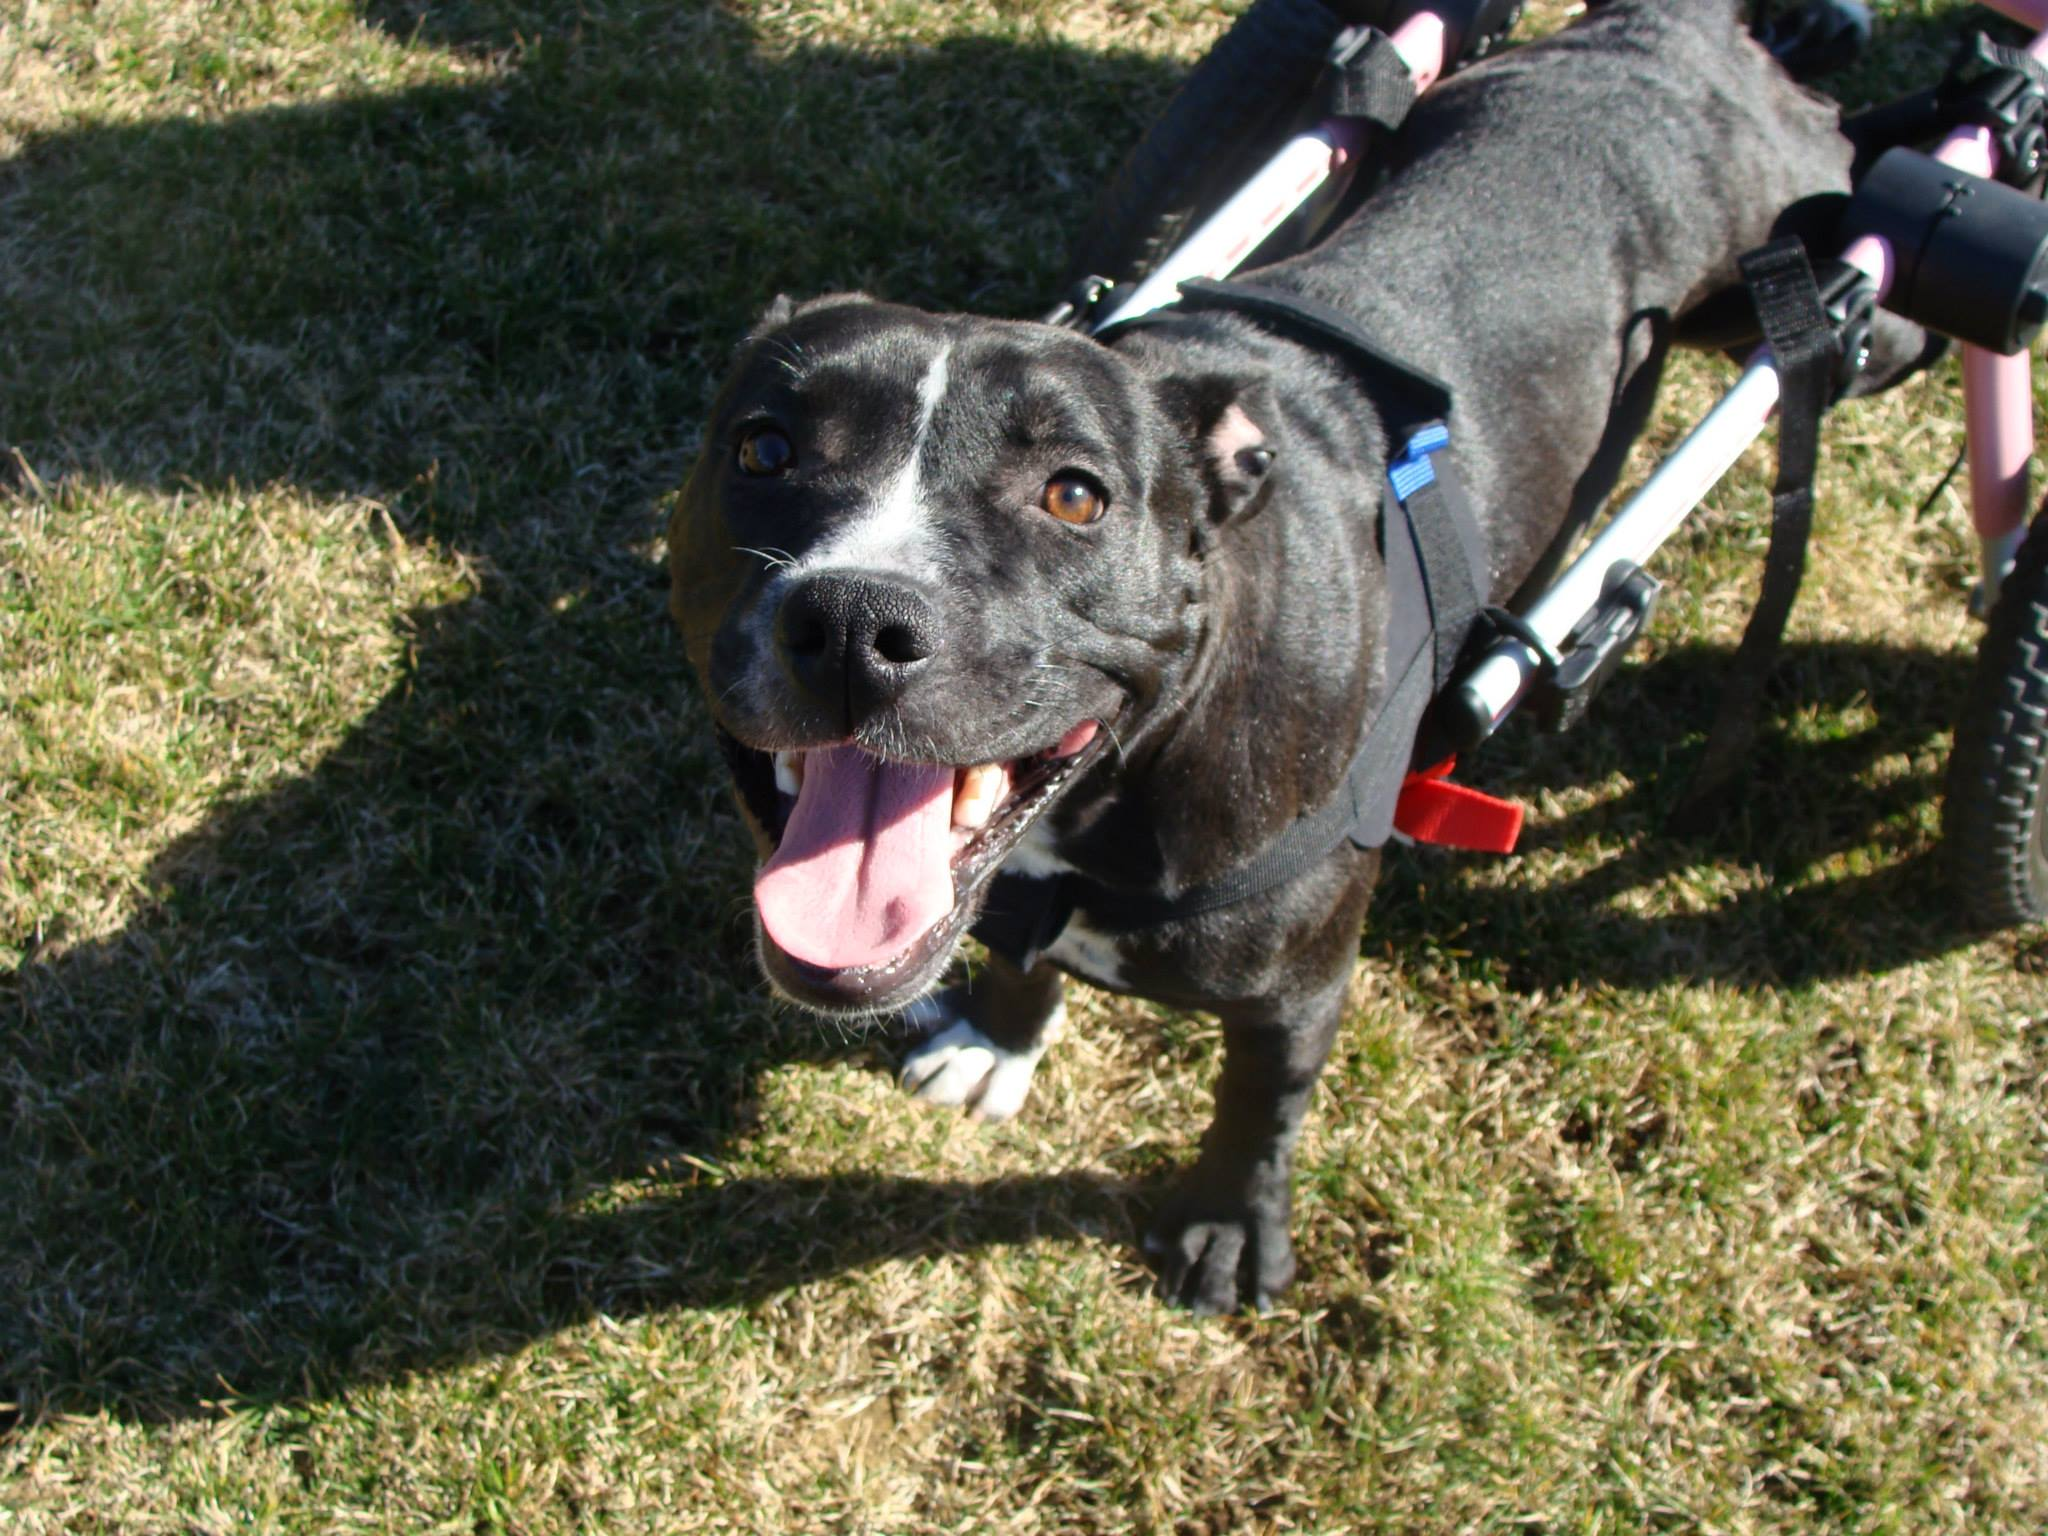 Heat's Haven's Rescue brought Dog to WestVet for Spinal Injuries -- Now available for Adoption.